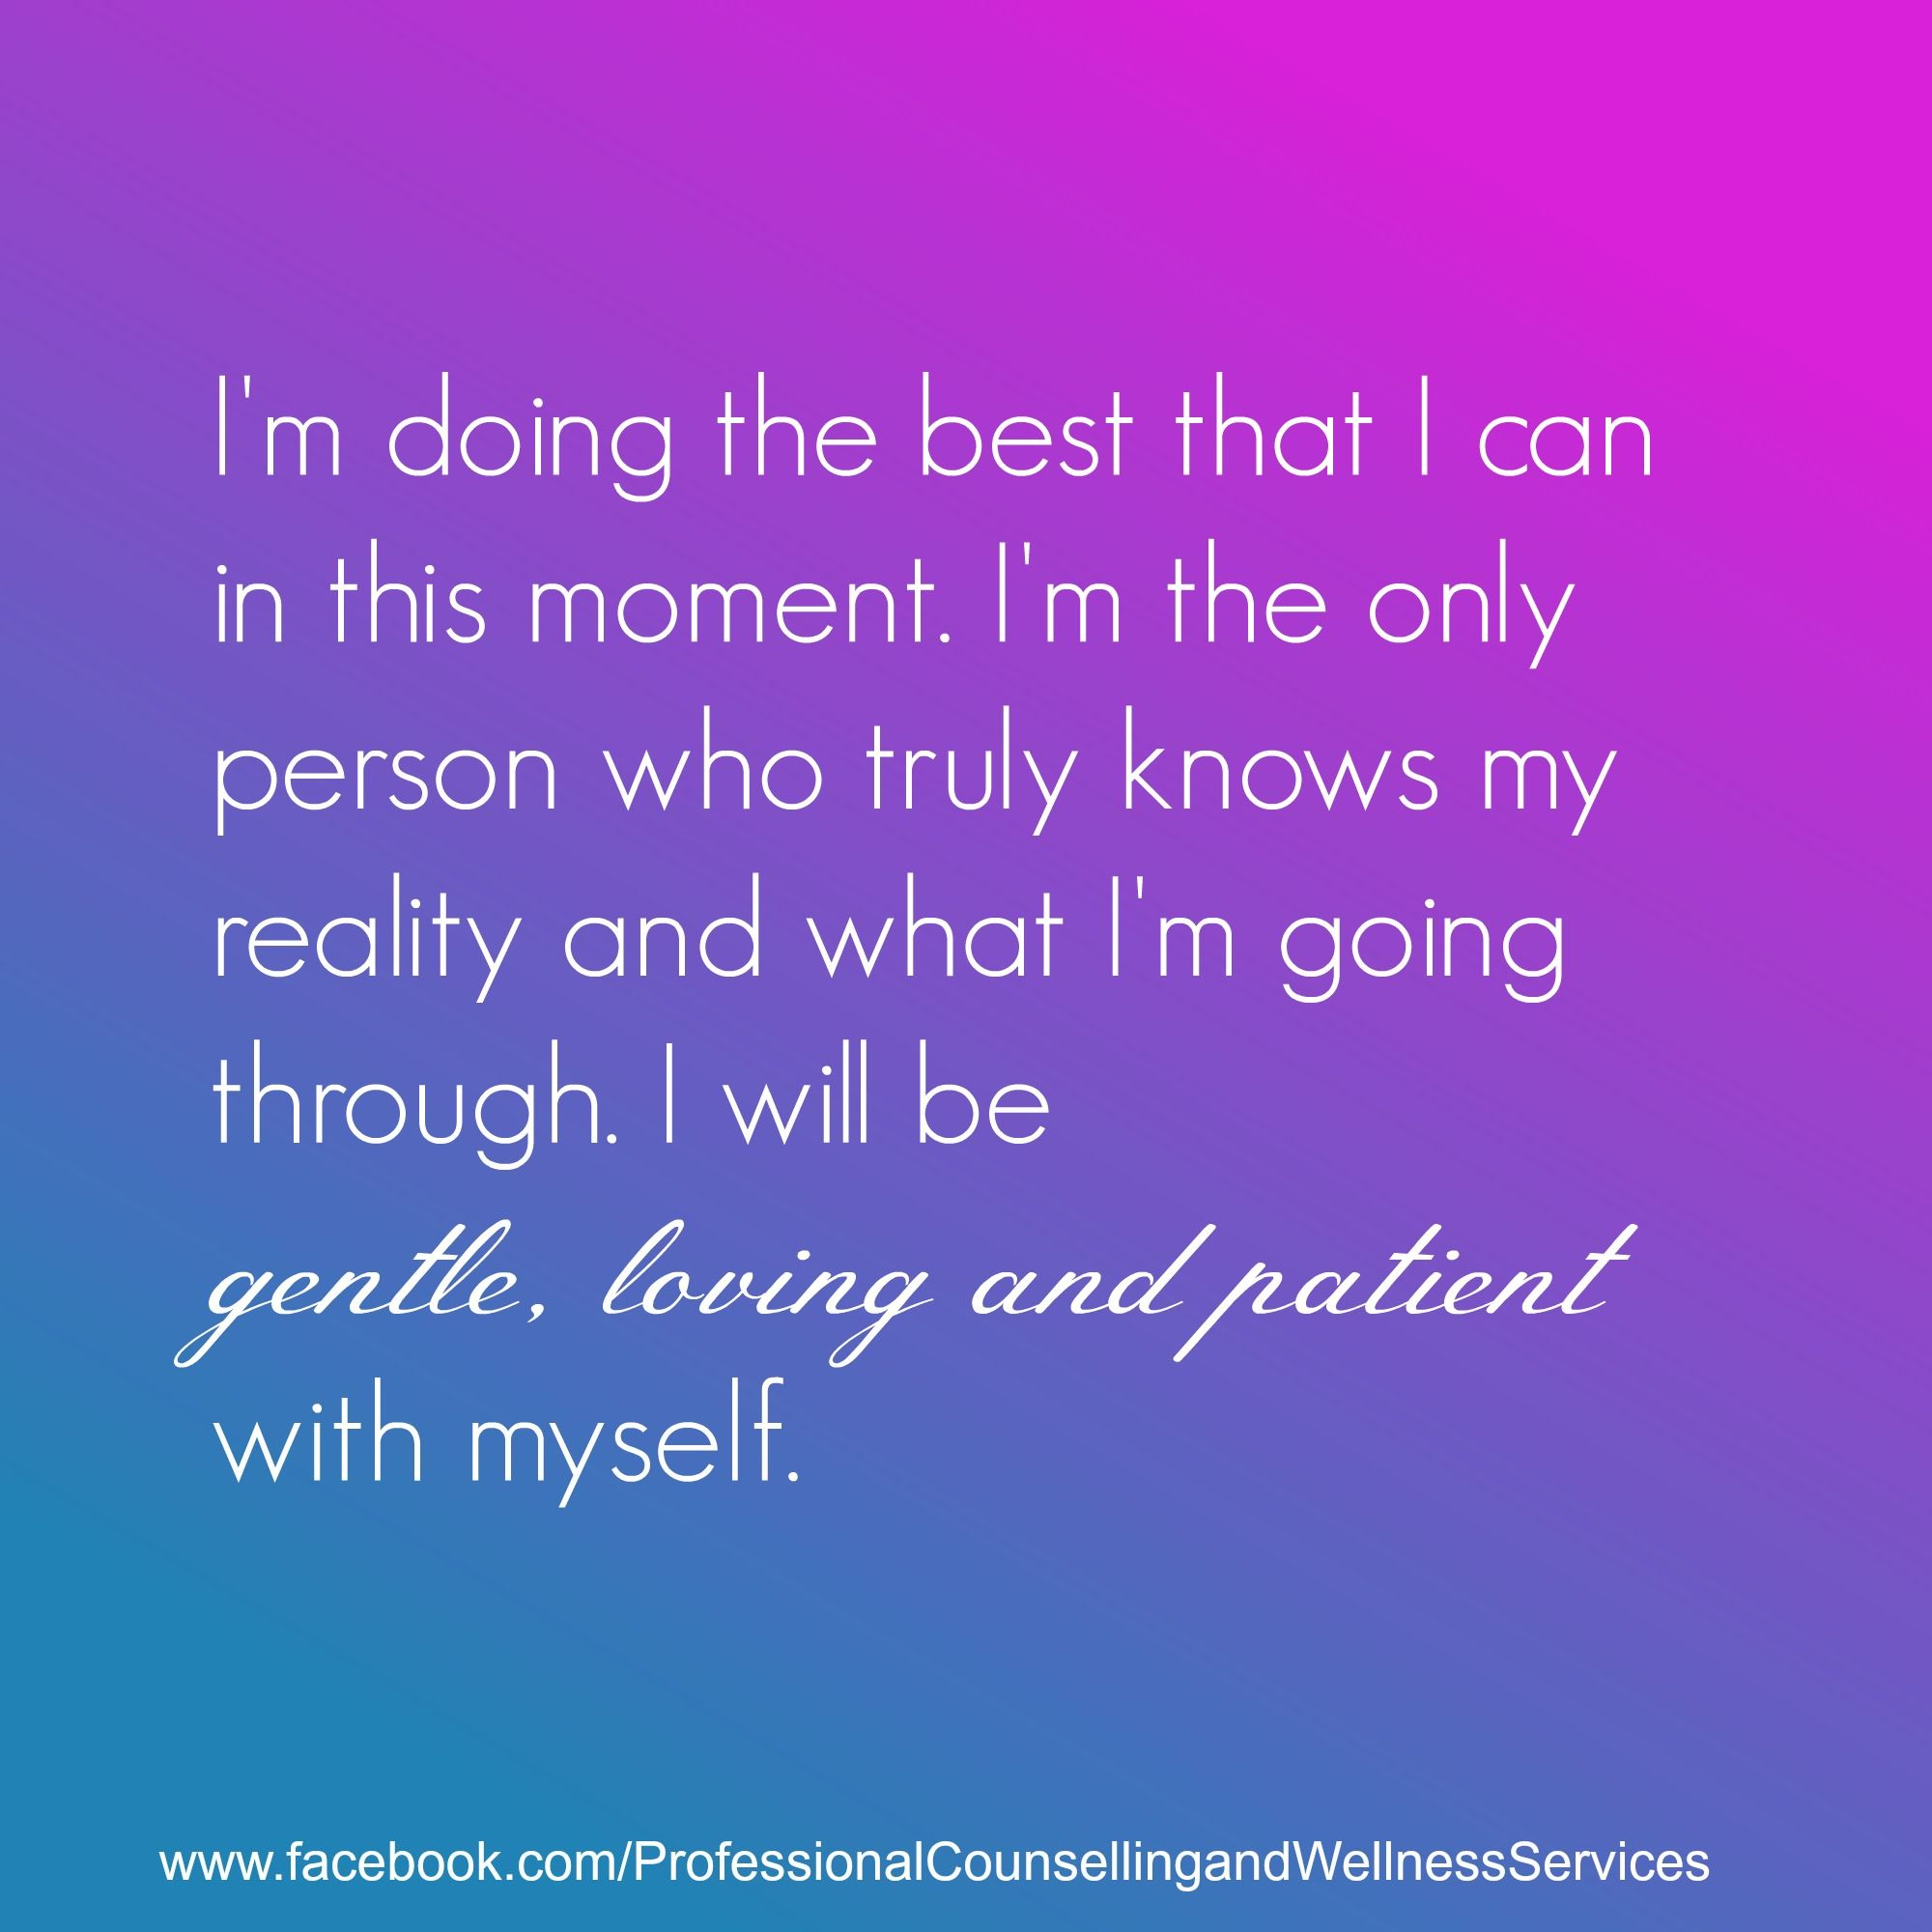 I Do The Best I Can Quotes: I'm Doing The Best That I Can In This Moment. I'm The Only